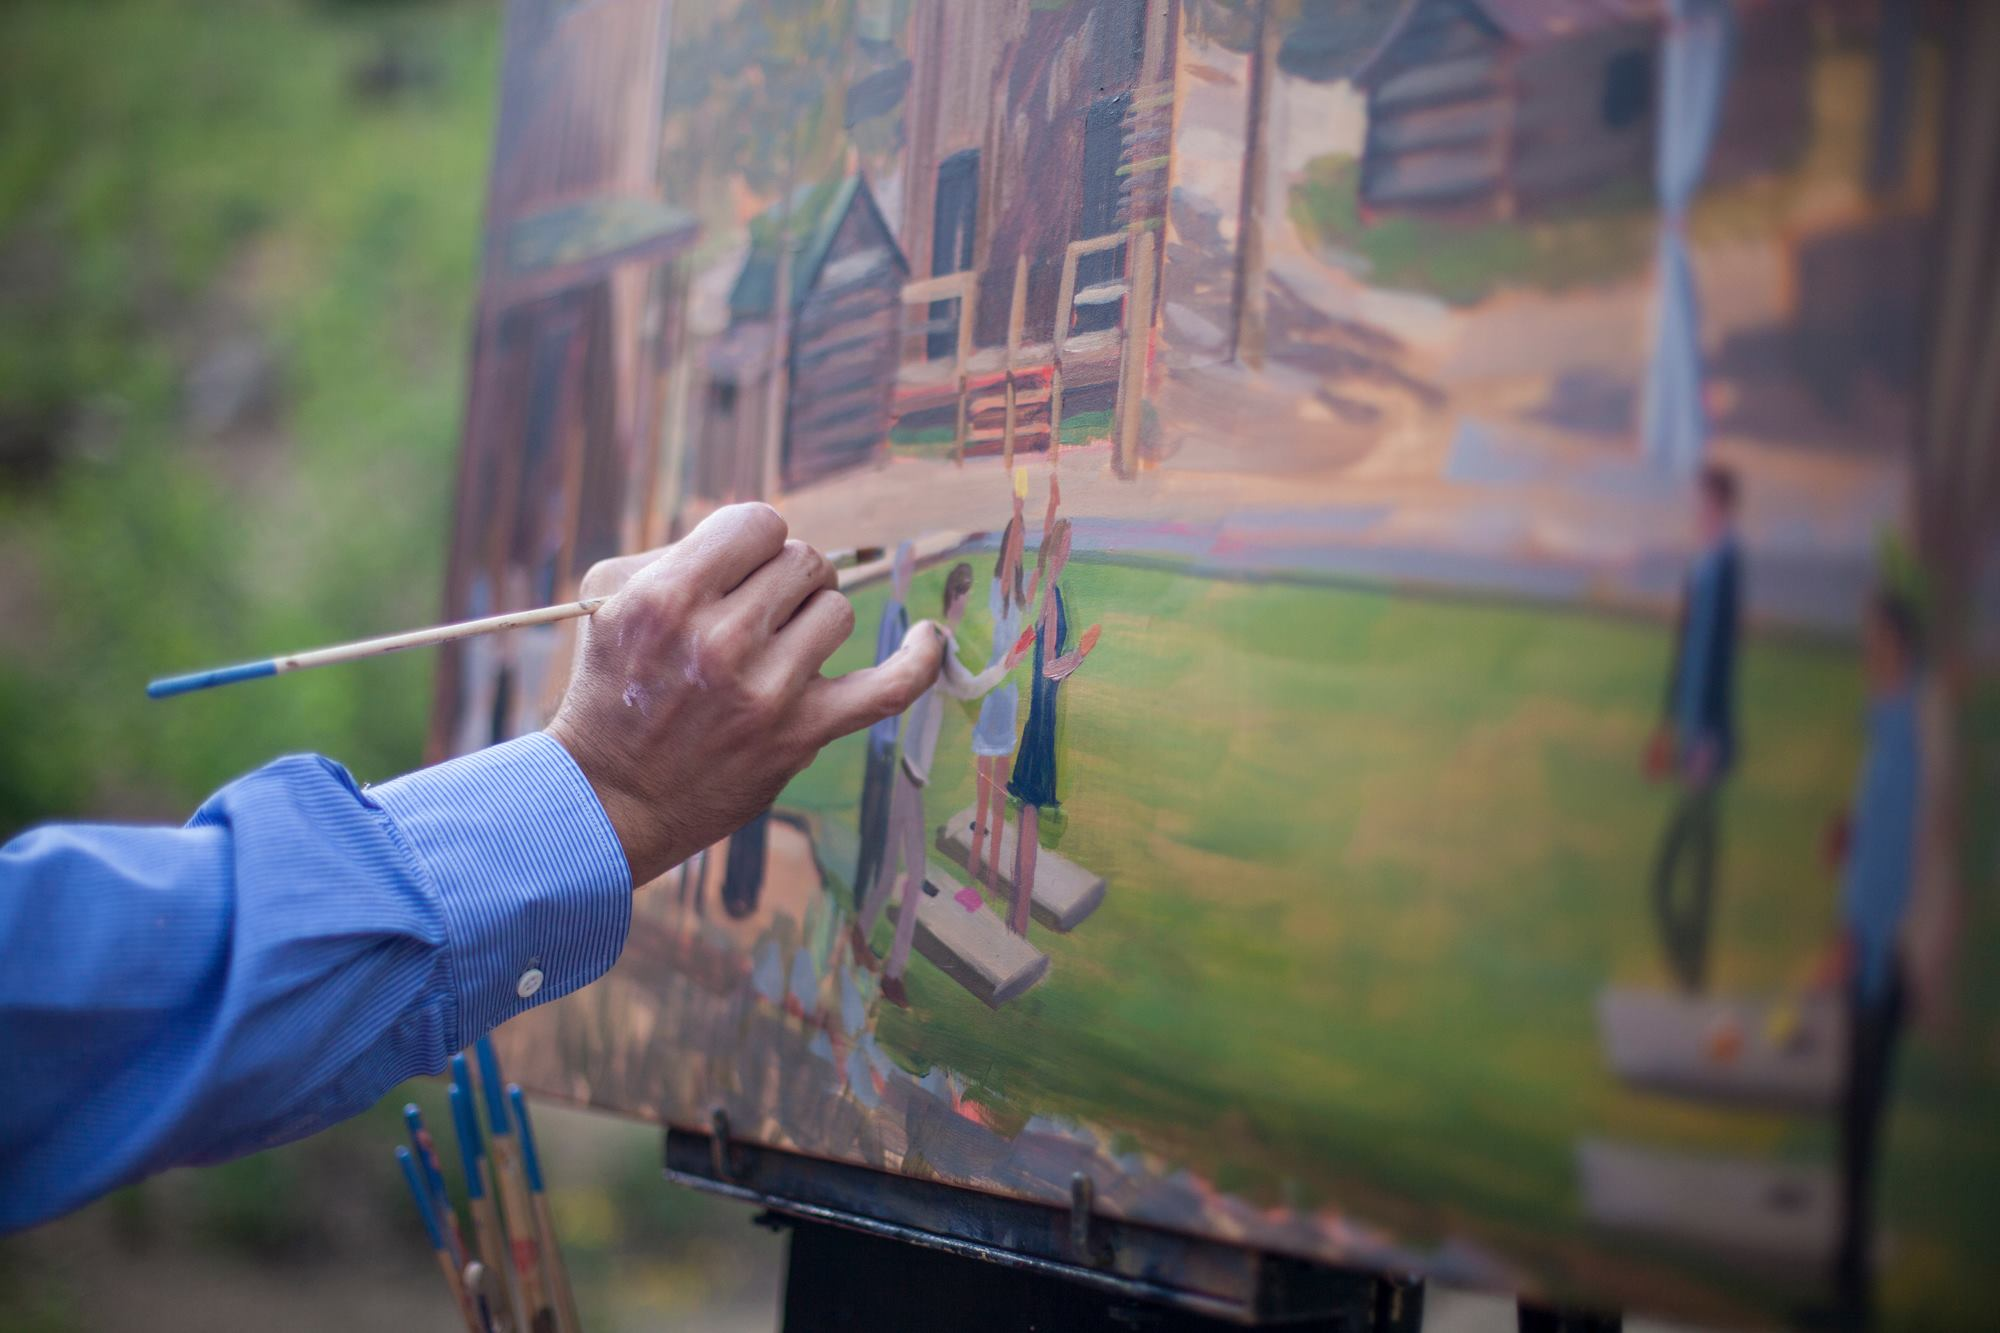 live-wedding-artist-ben-keys-of-wed-on-canvas-painting-live-at-wedding-reception